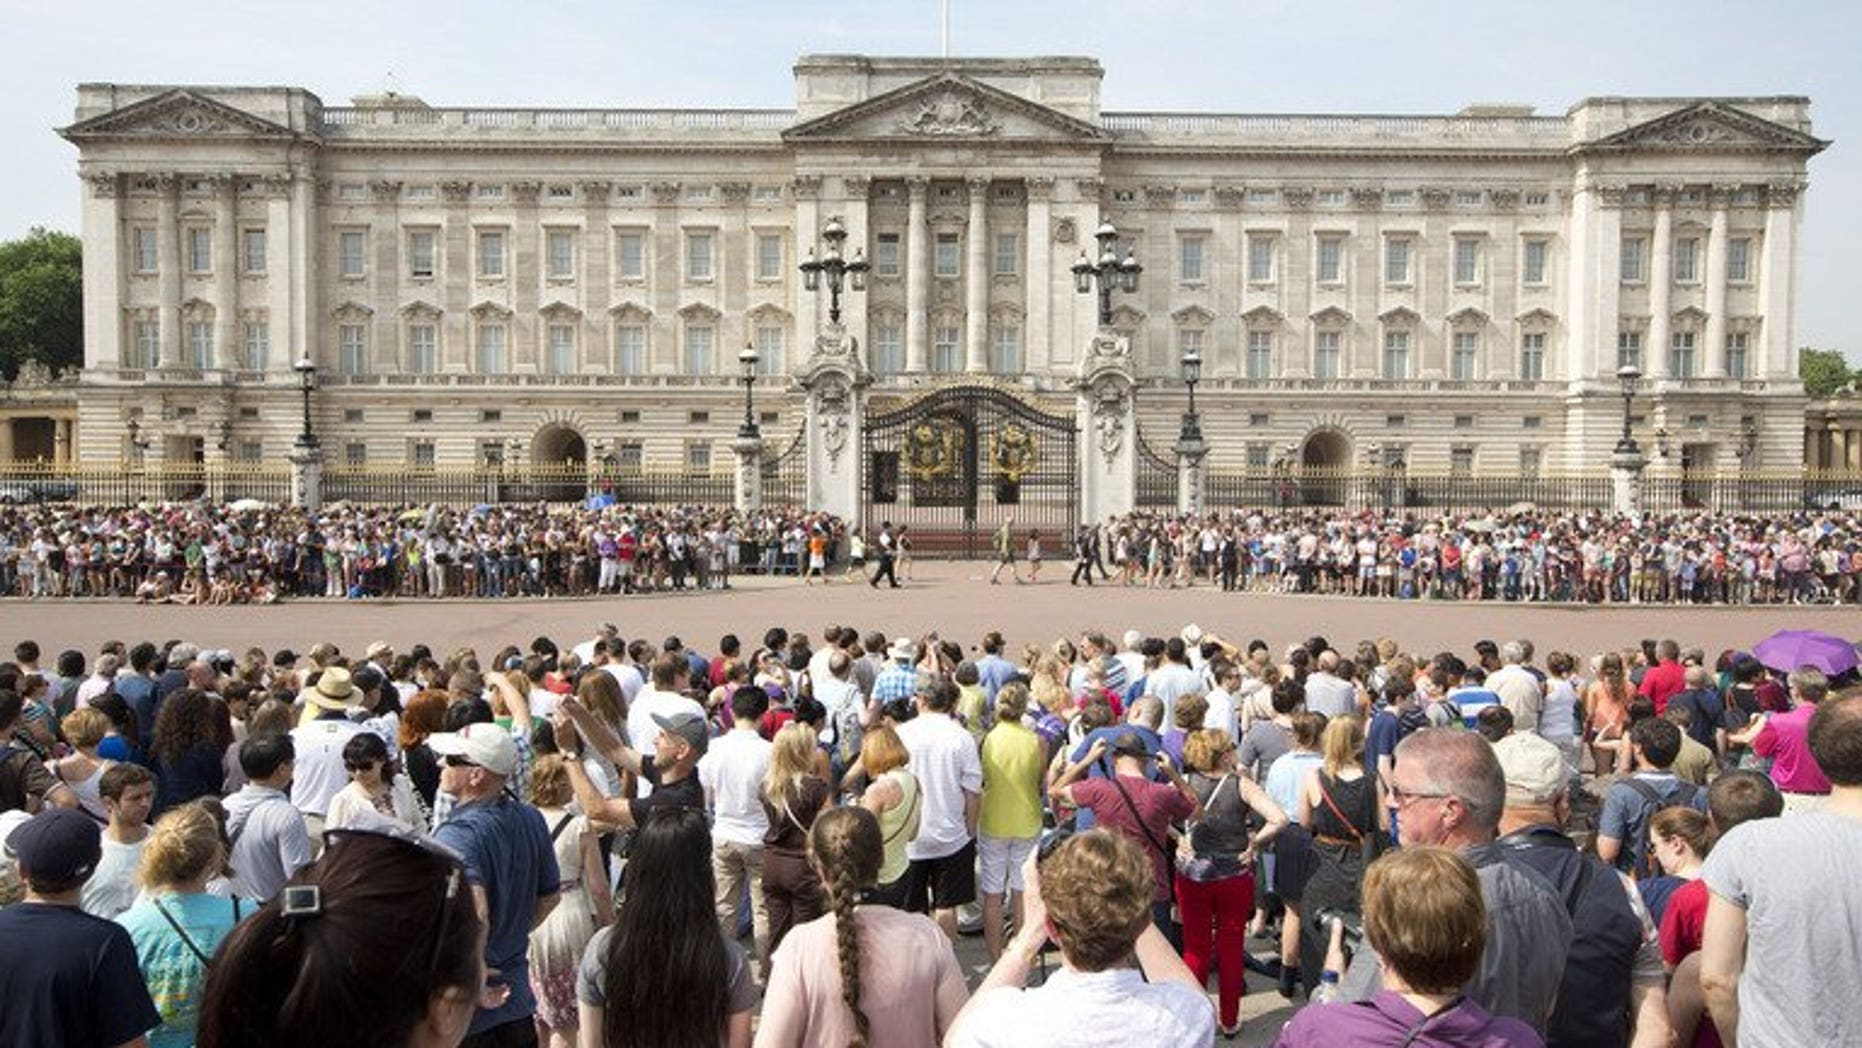 Crowds of tourists gather on the steps of the Queen Victoria Memorial Statue outside Buckingham Palace in central London on July 22, 2013.